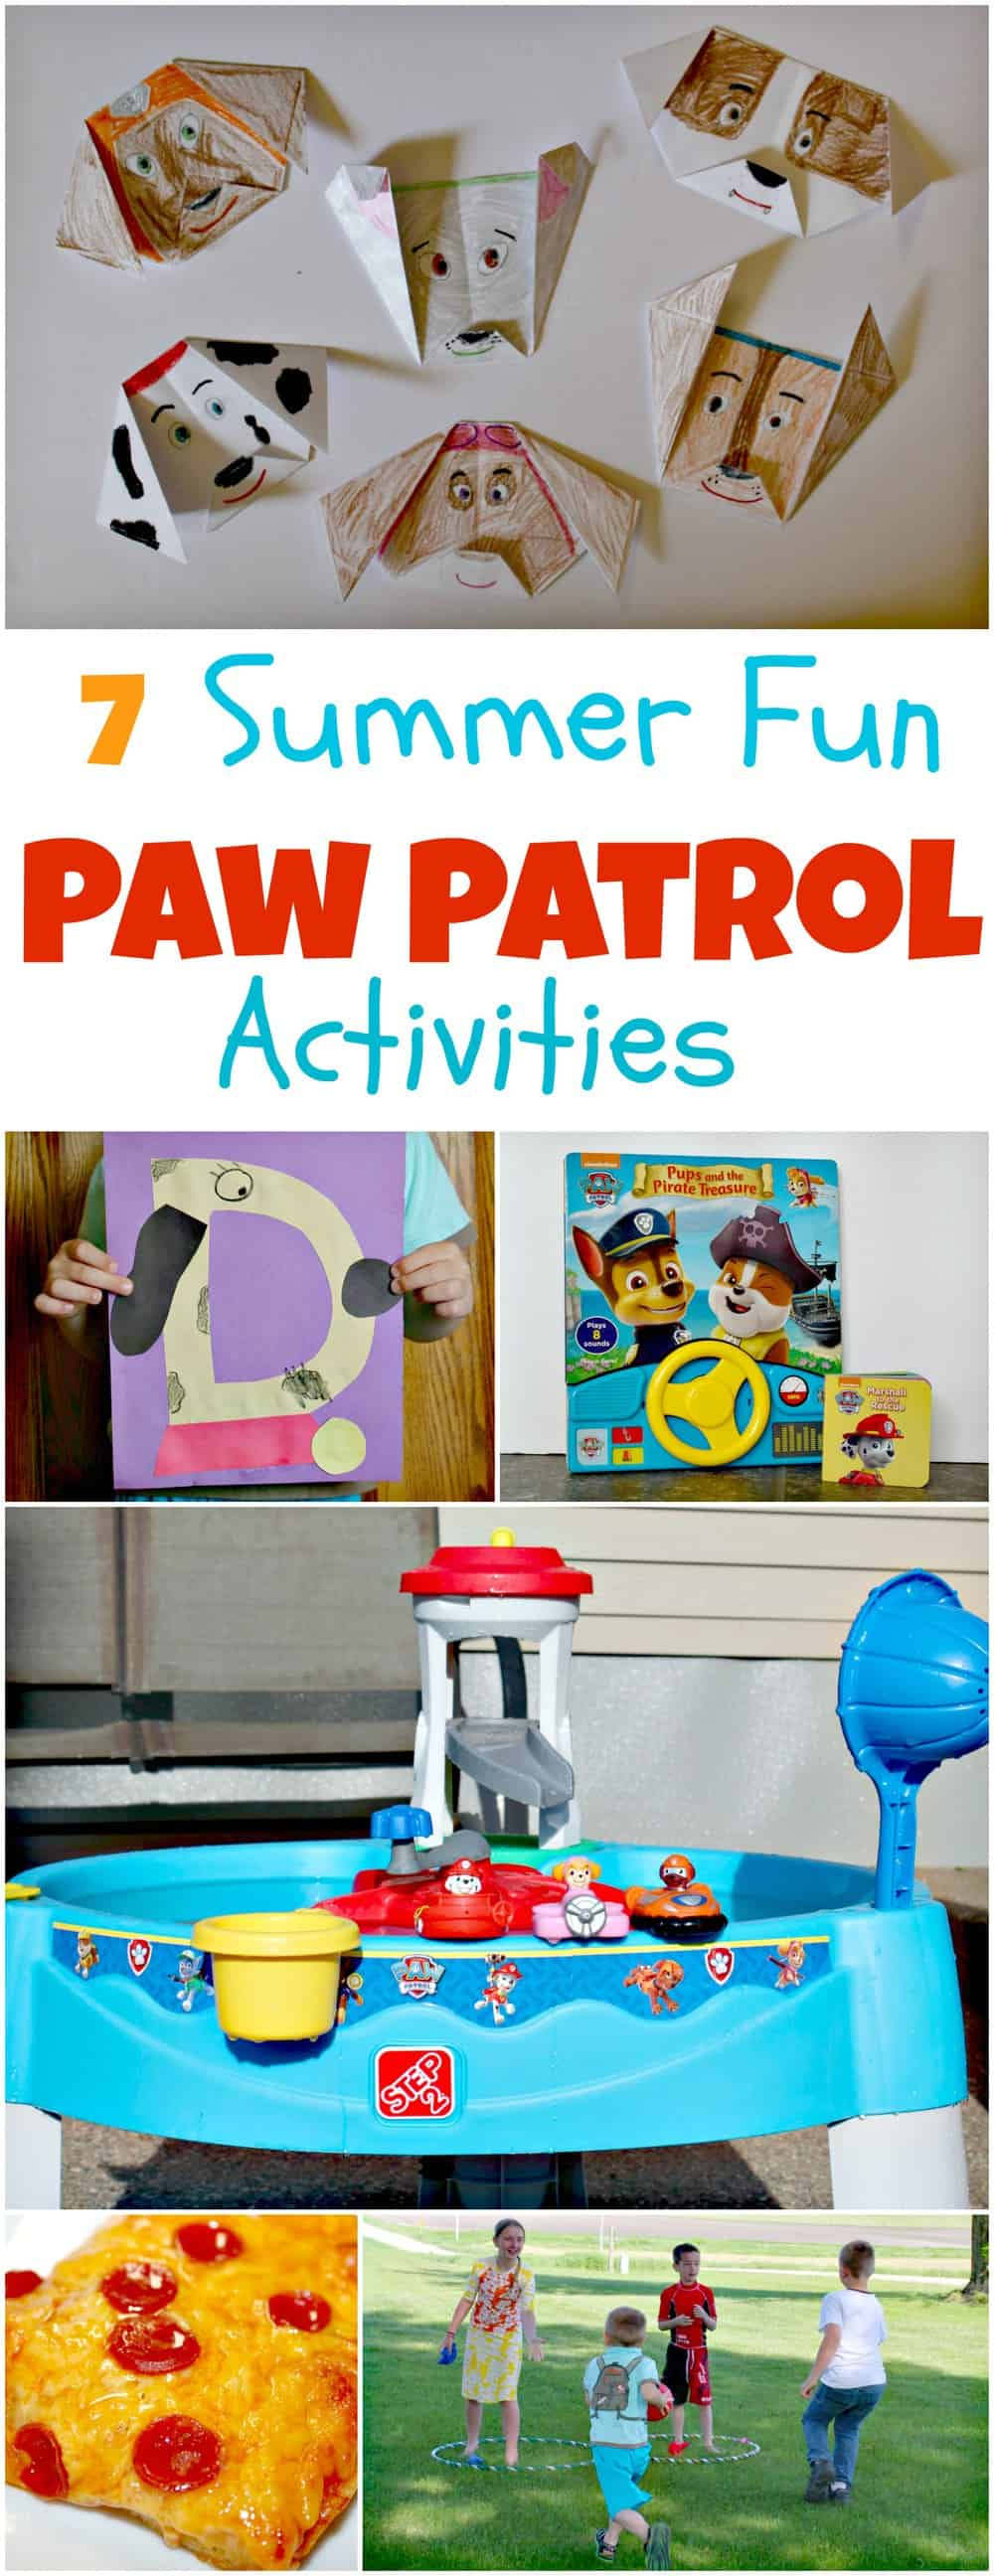 fun Paw Patrol activities